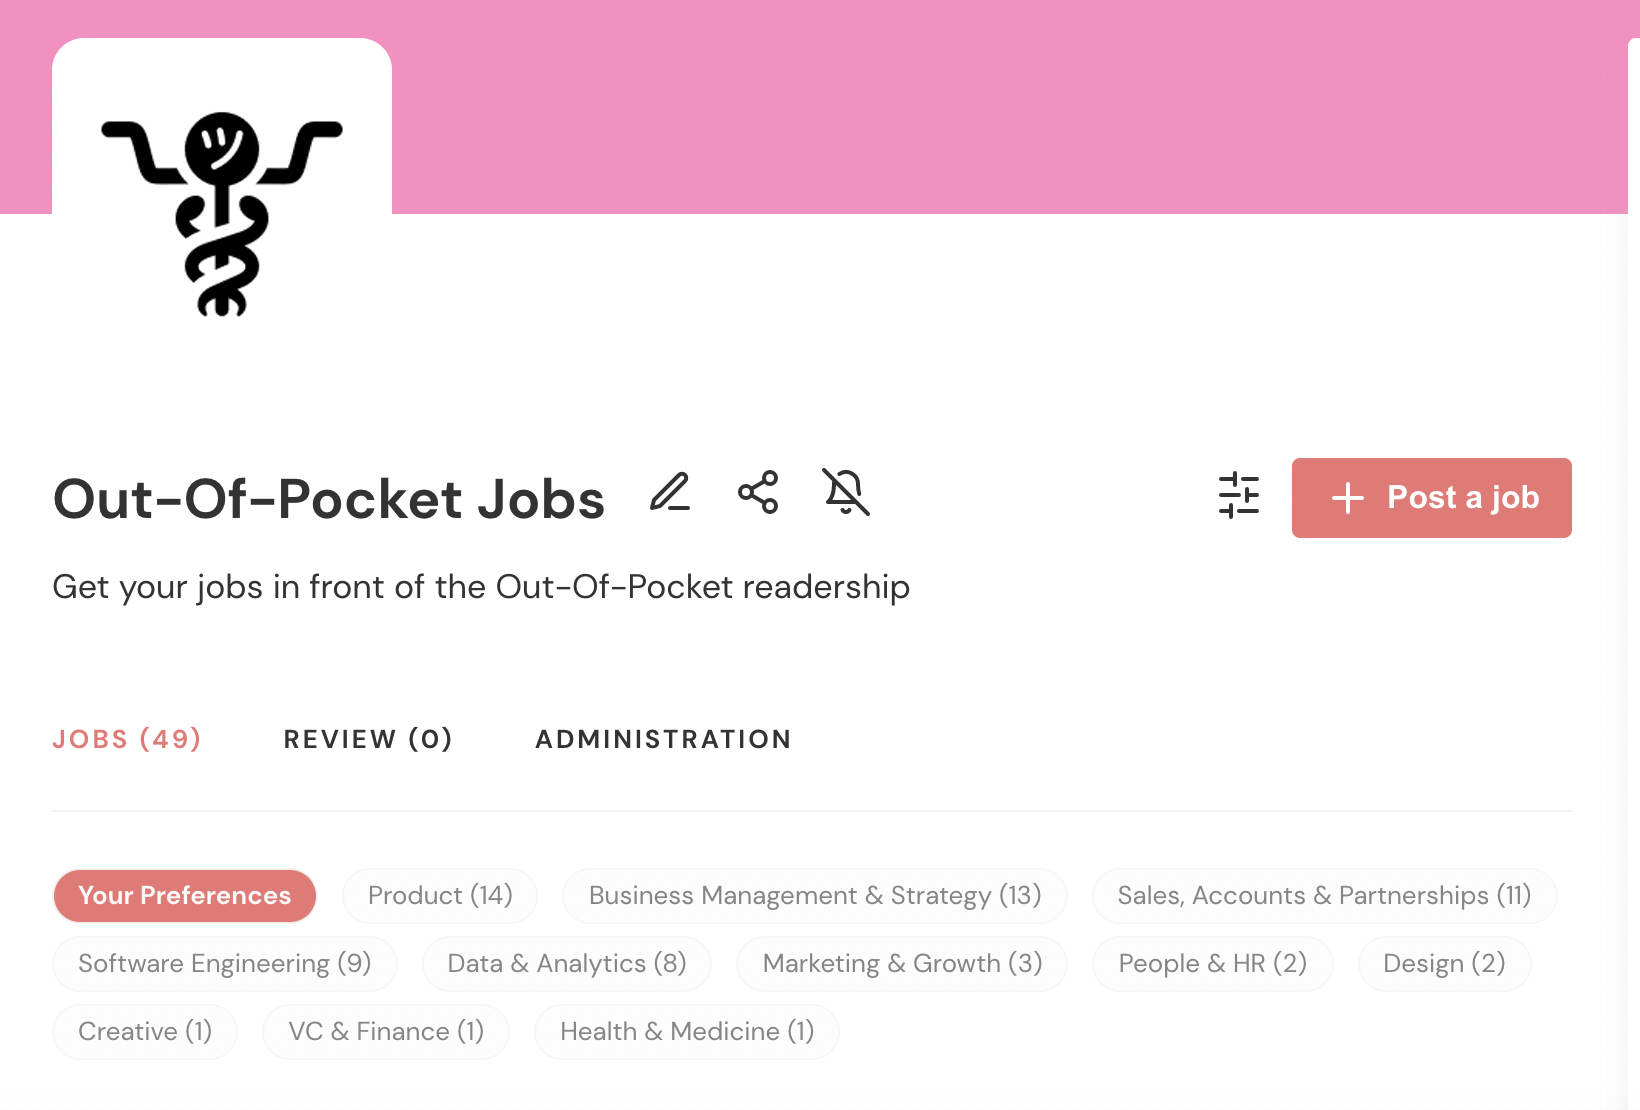 Announcing the Out-Of-Pocket Job Board!